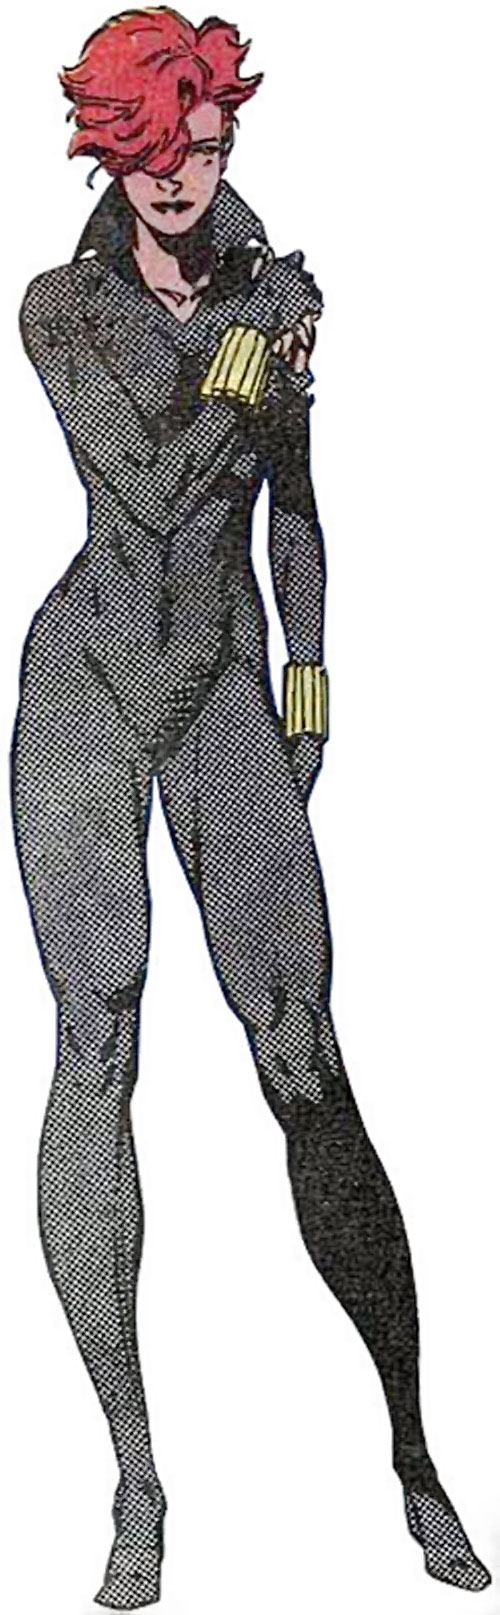 Black Widow (1980s Marvel Comics) in the grey costume holding her wounded shoulder